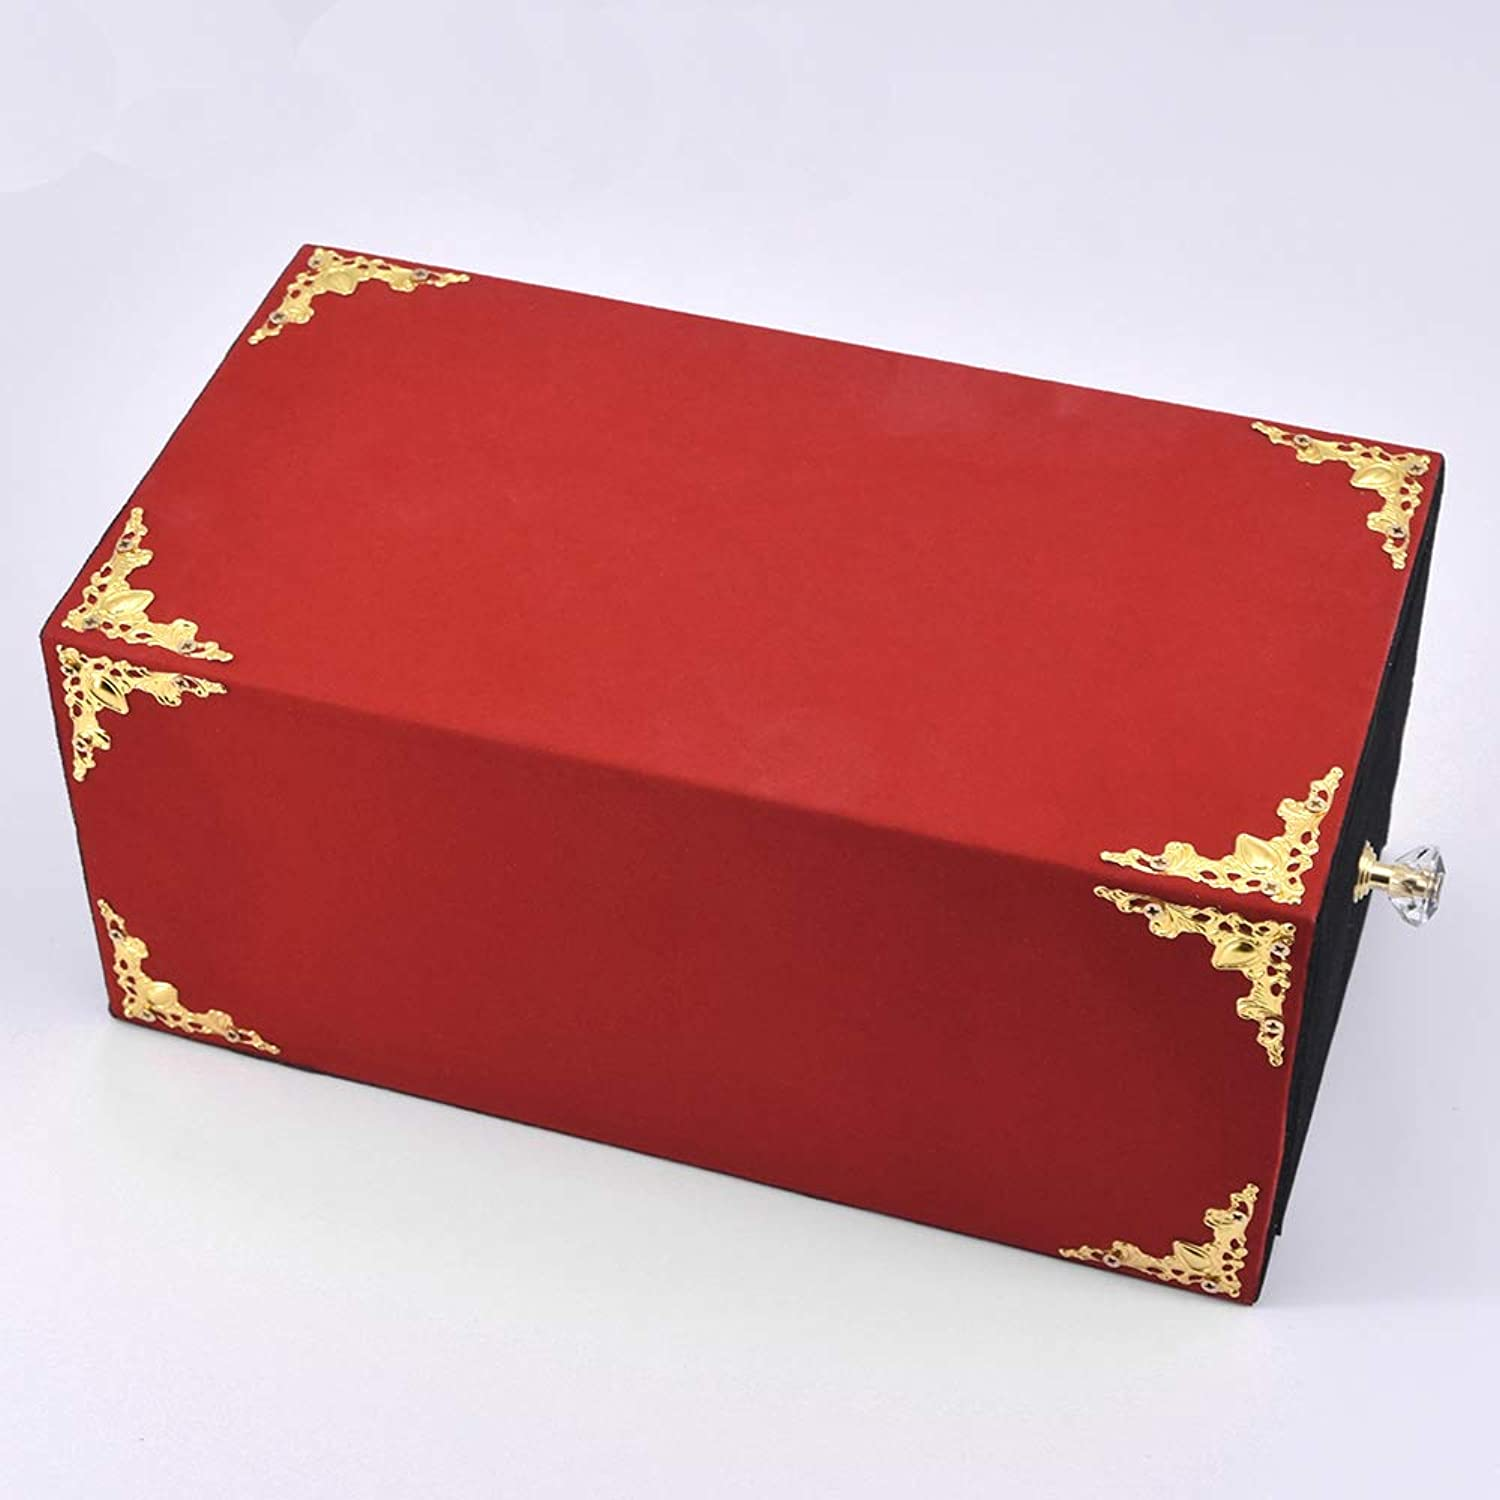 Wooden Drawer Box Magic Tricks Magician Box Props Stage Illusions Magic Gimmick Comedy Objects Appearing Vanishing Magia (Wooden Drawer Box)